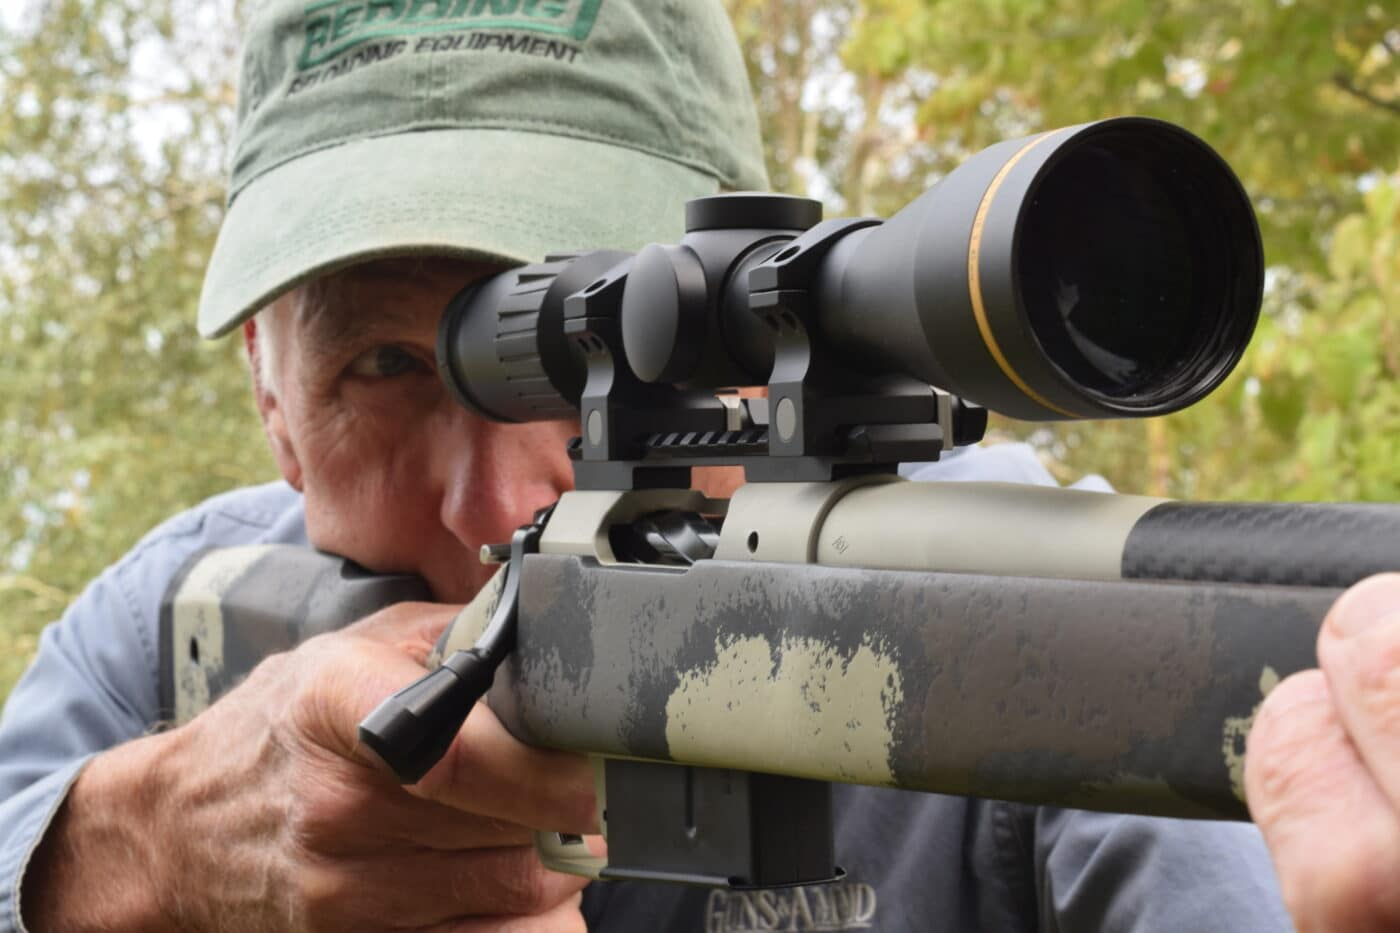 Springfield Waypoint rifle set up with scope for deer hunting